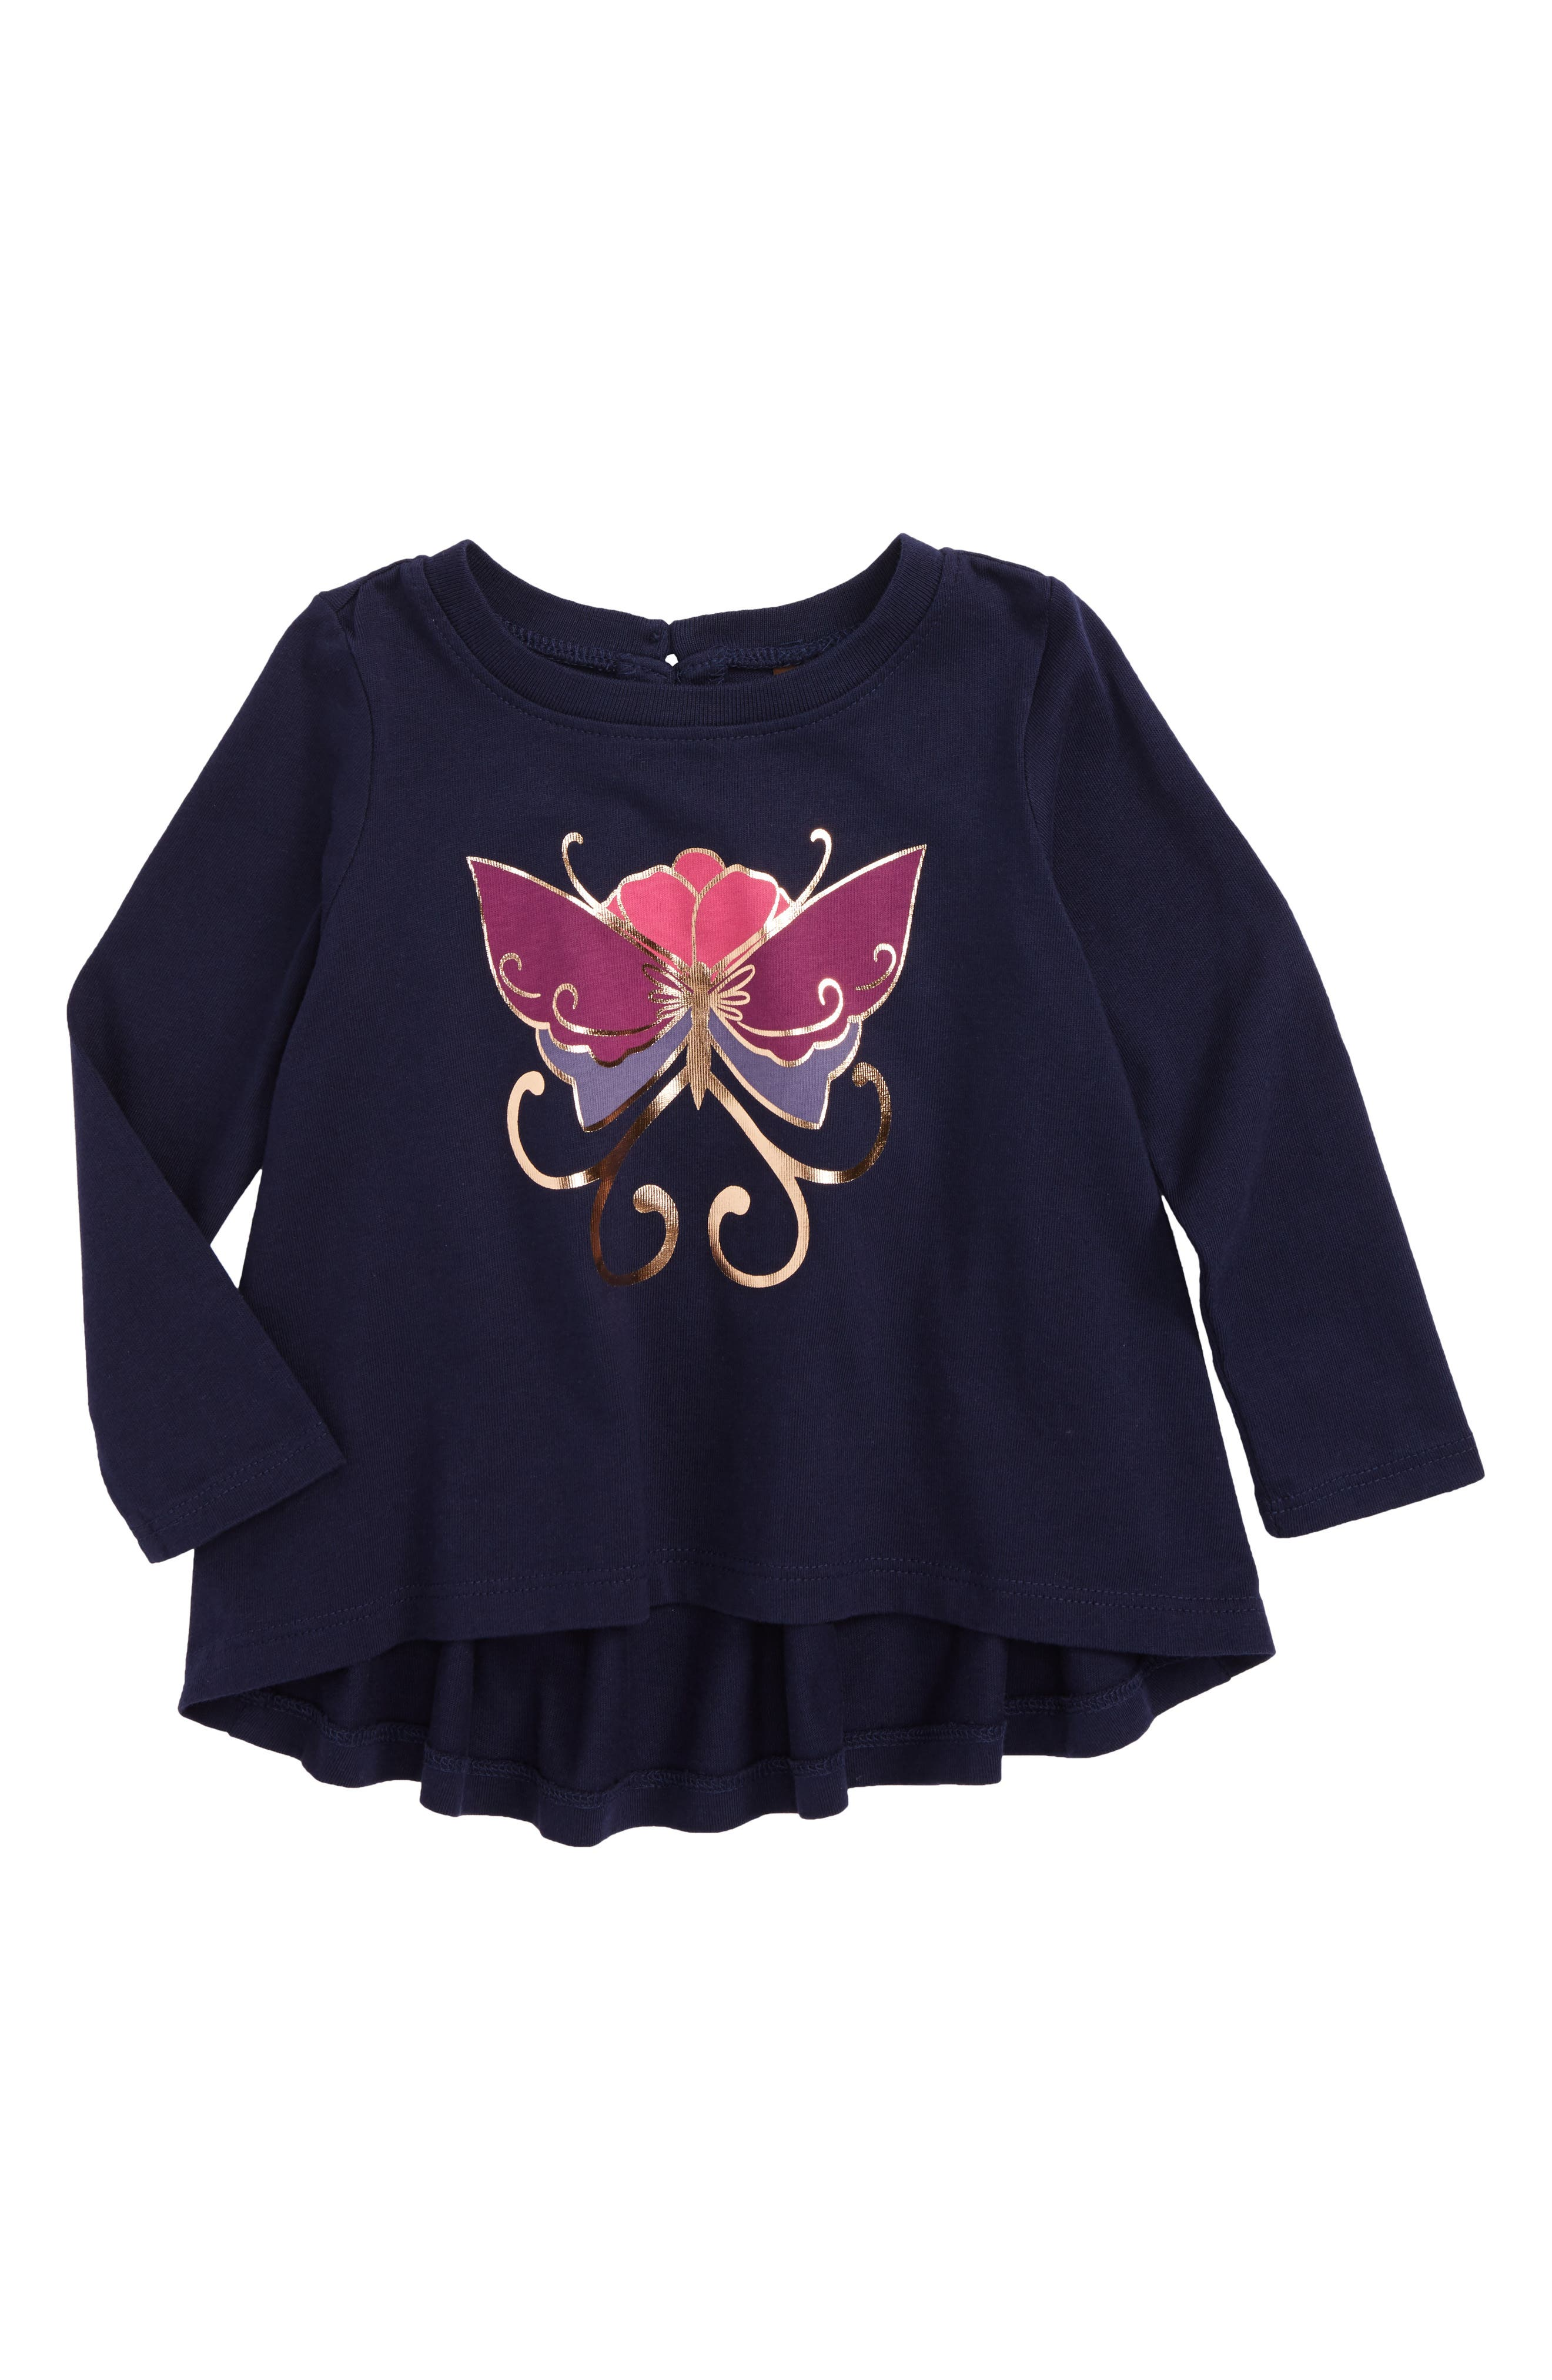 Tea Collection Willowhill Graphic Tee (Baby Girls)